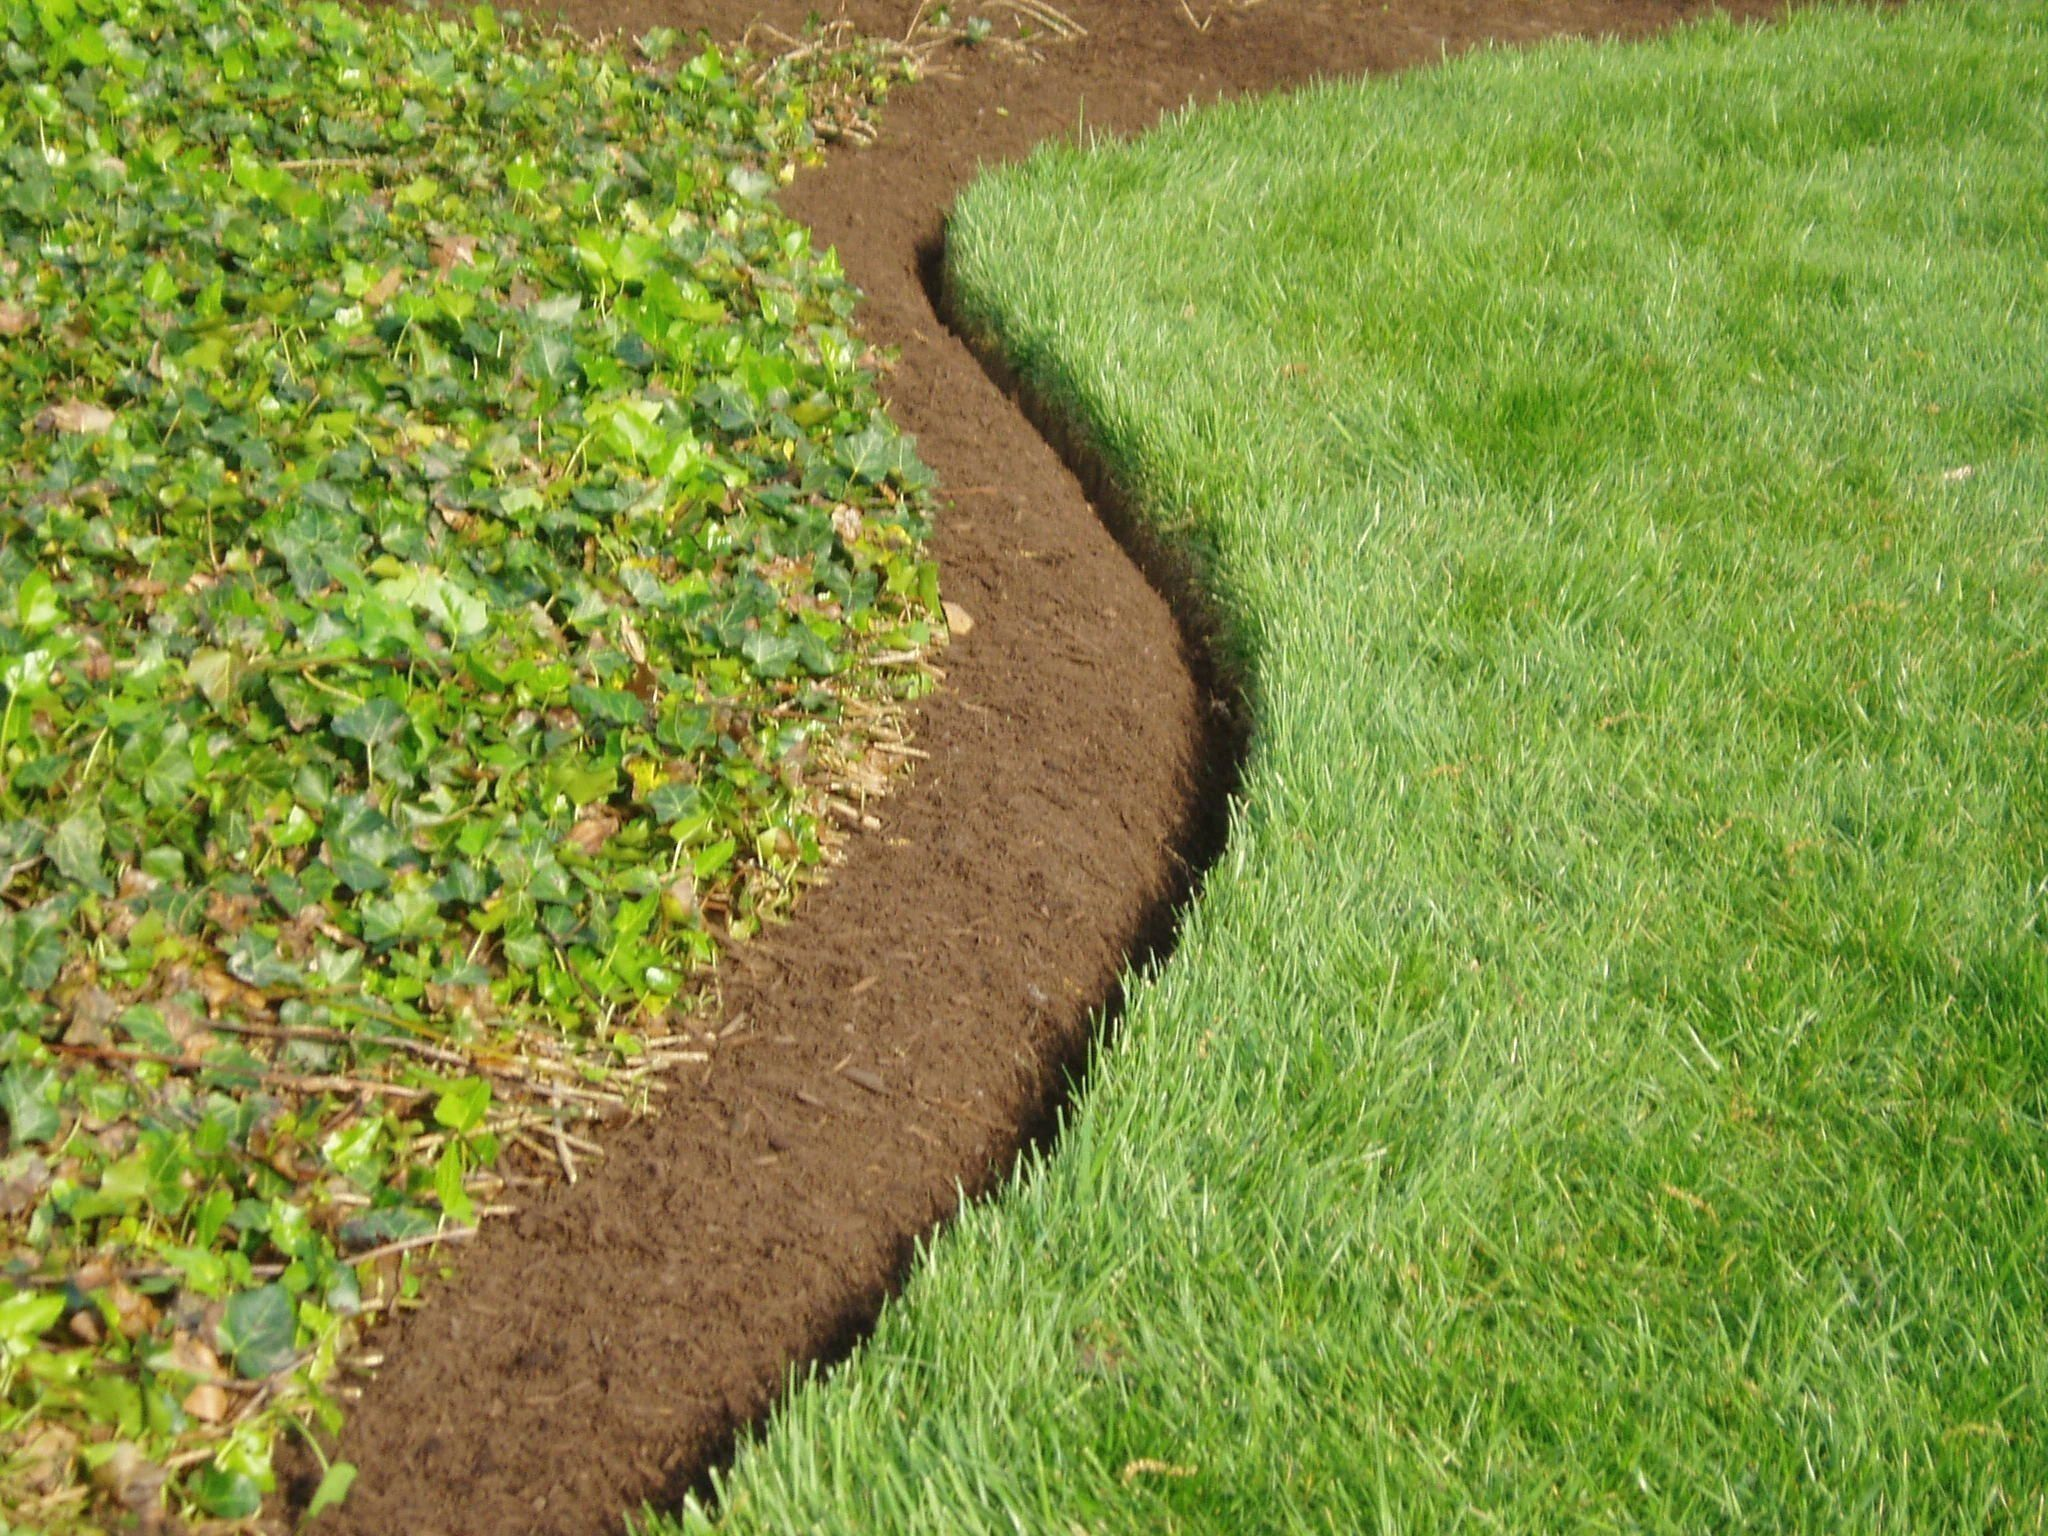 The Best Landscape Edging To Install Around Your Flower Beds Natural Landscape Modern Design In 2020 Landscape Edging Metal Landscape Edging Lawn Edging